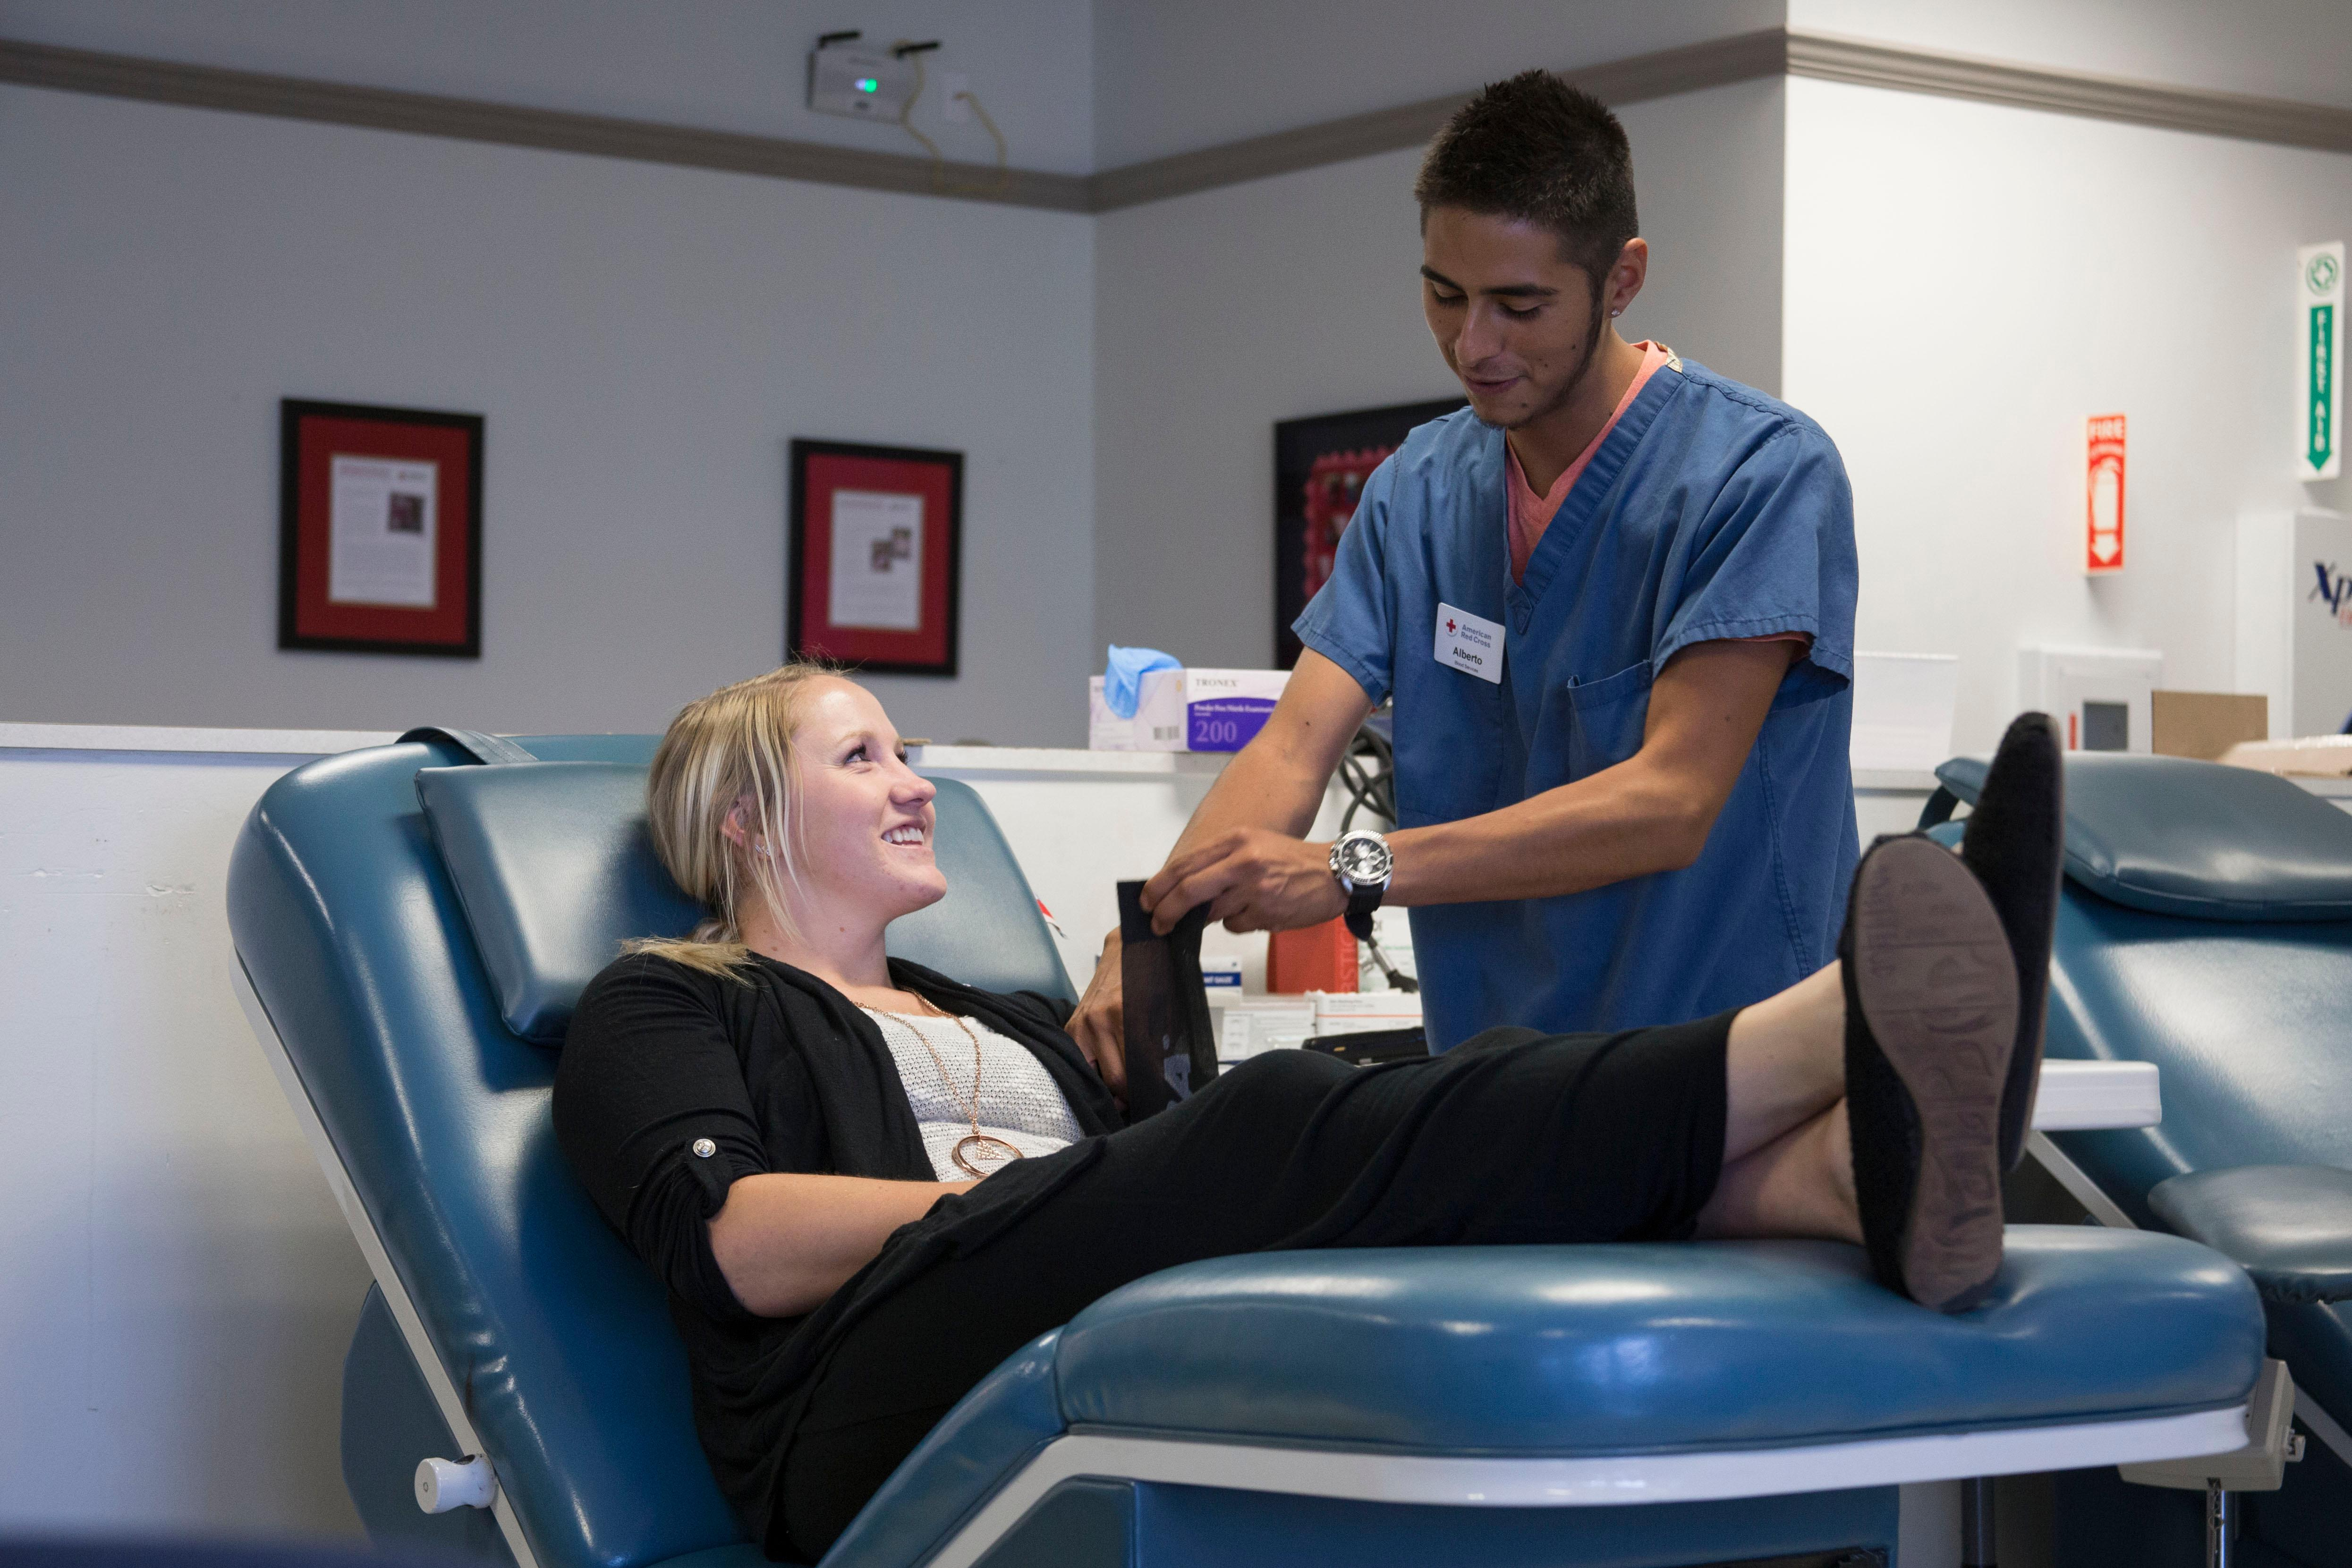 July 21, 2015. Salt Lake Donor Center, Salt Lake City, Utah. 23-year-old Kelsie Webster chats with Red Cross staffer Alberto Duenas while donating blood for the first time. Photo by Amanda Romney/American Red Cross